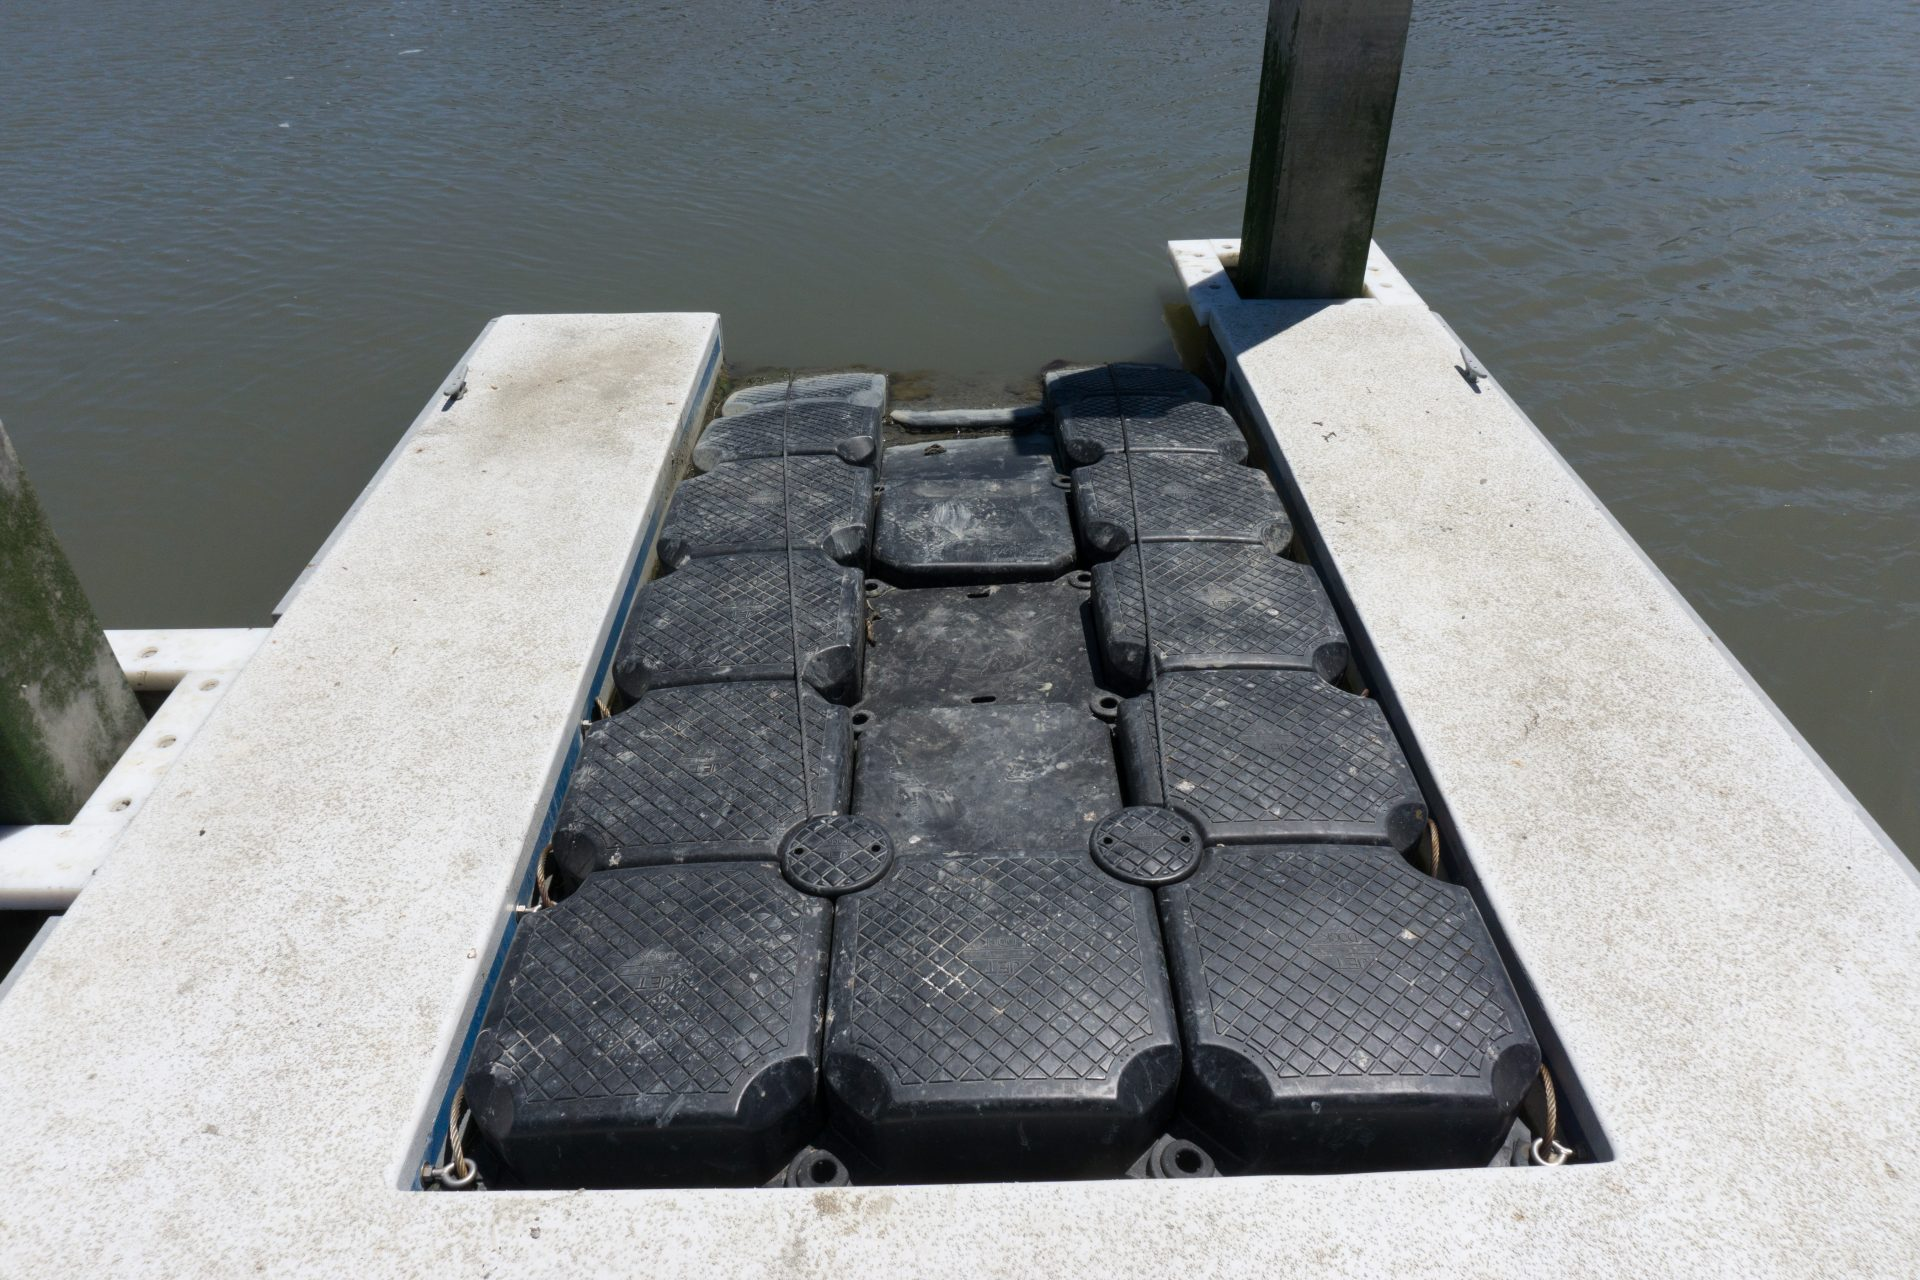 Closeup of rubber boat launch